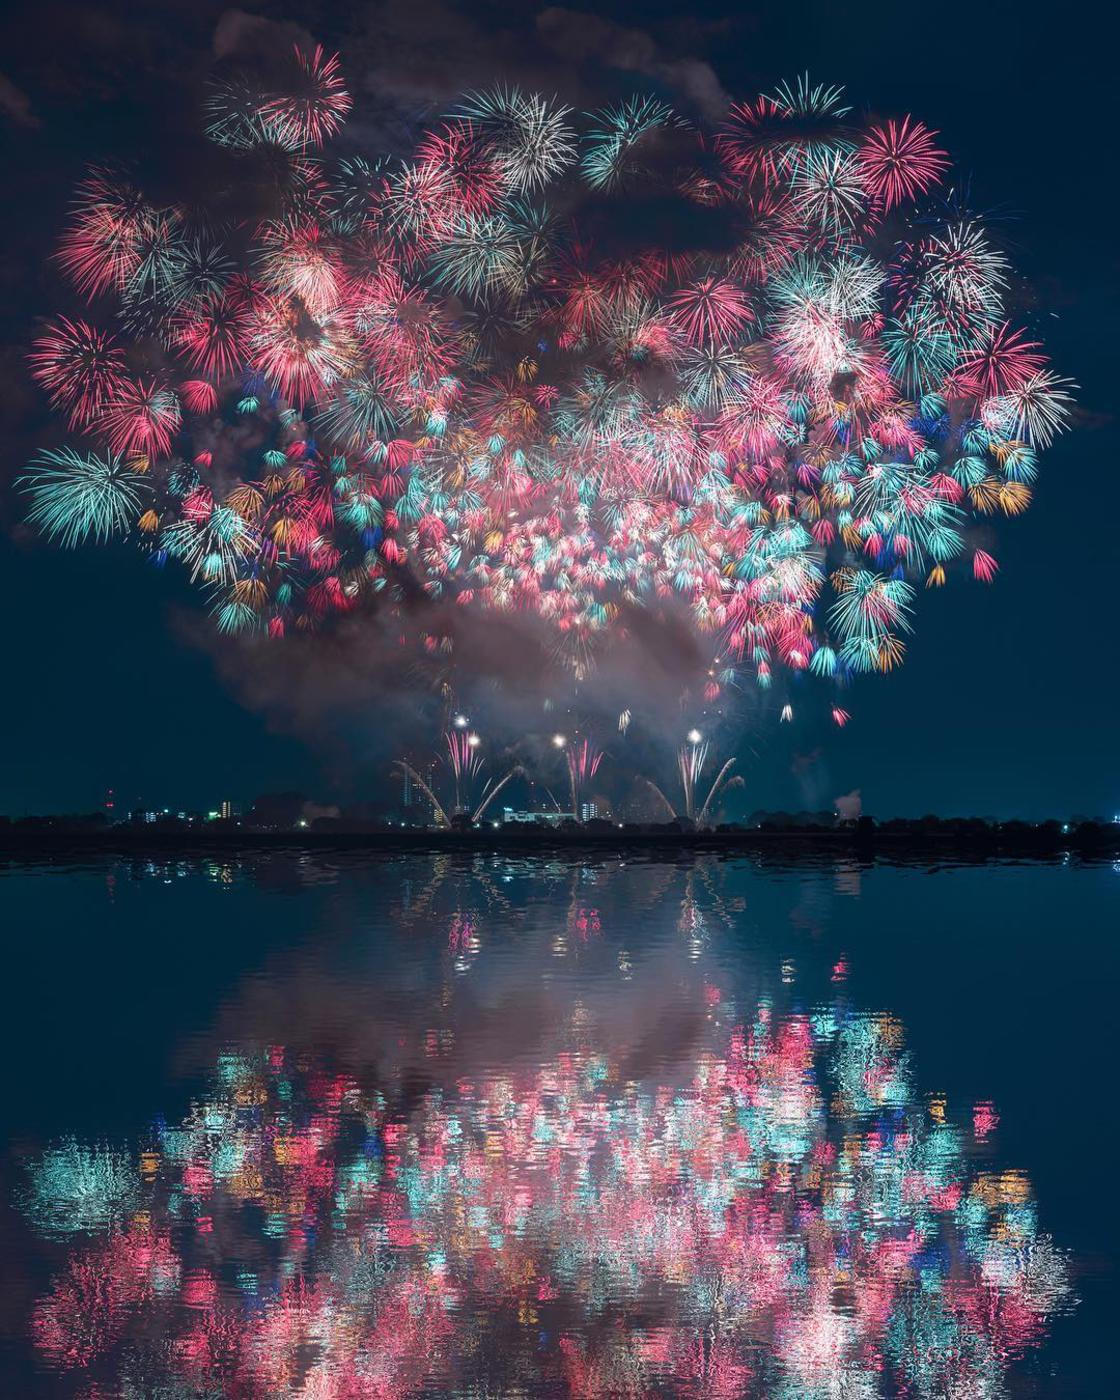 A photographer captures the beauty of fireworks in Japan